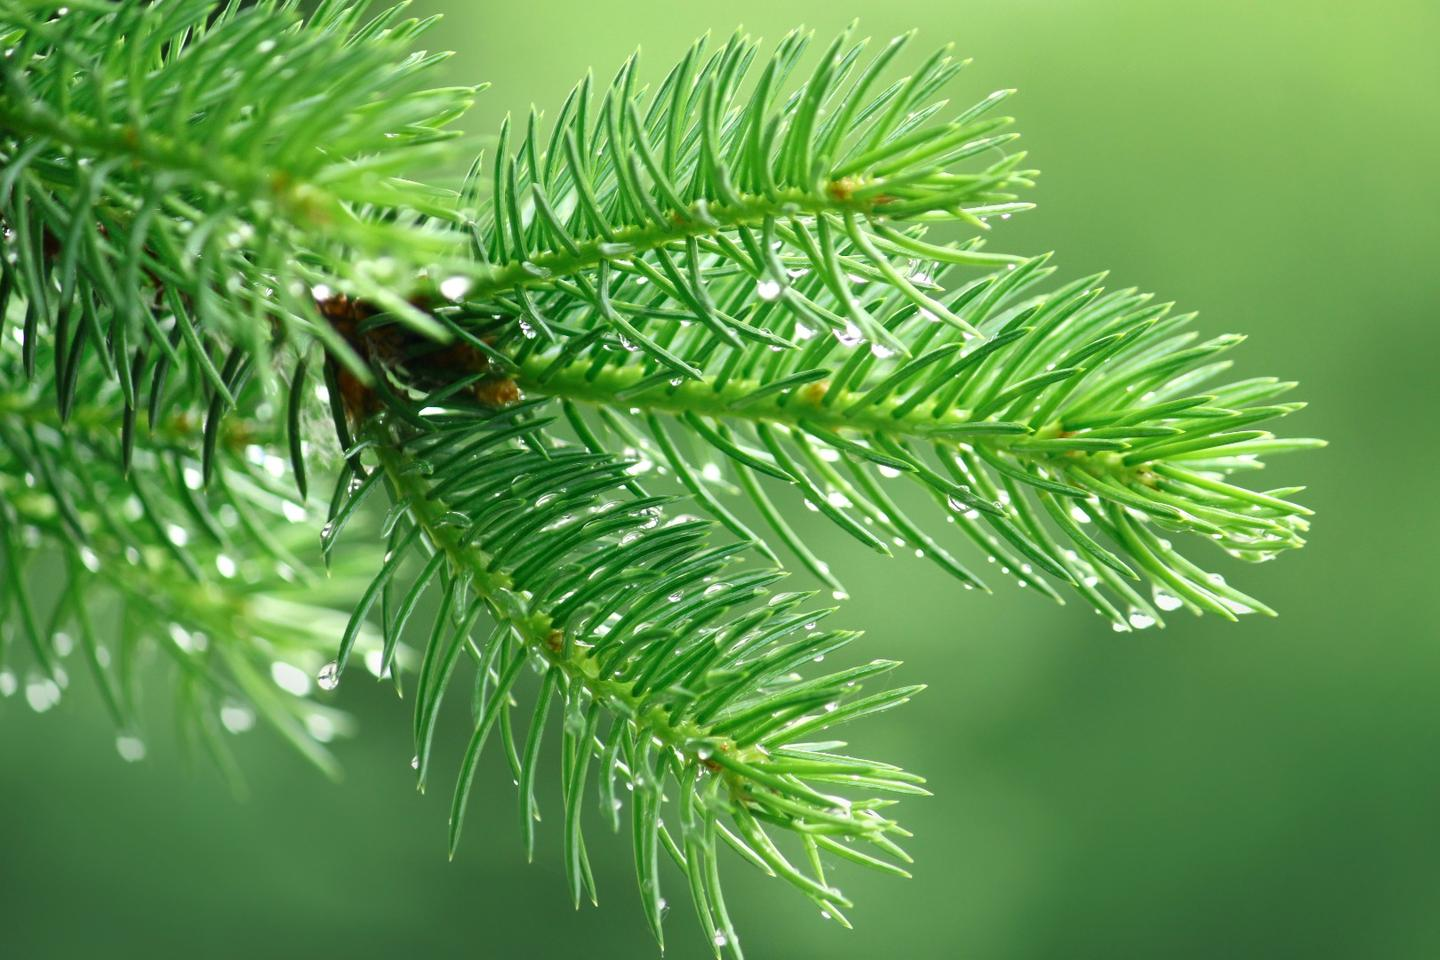 Scientists have produced a renewable plastic made with pinene, which is found in pine needles